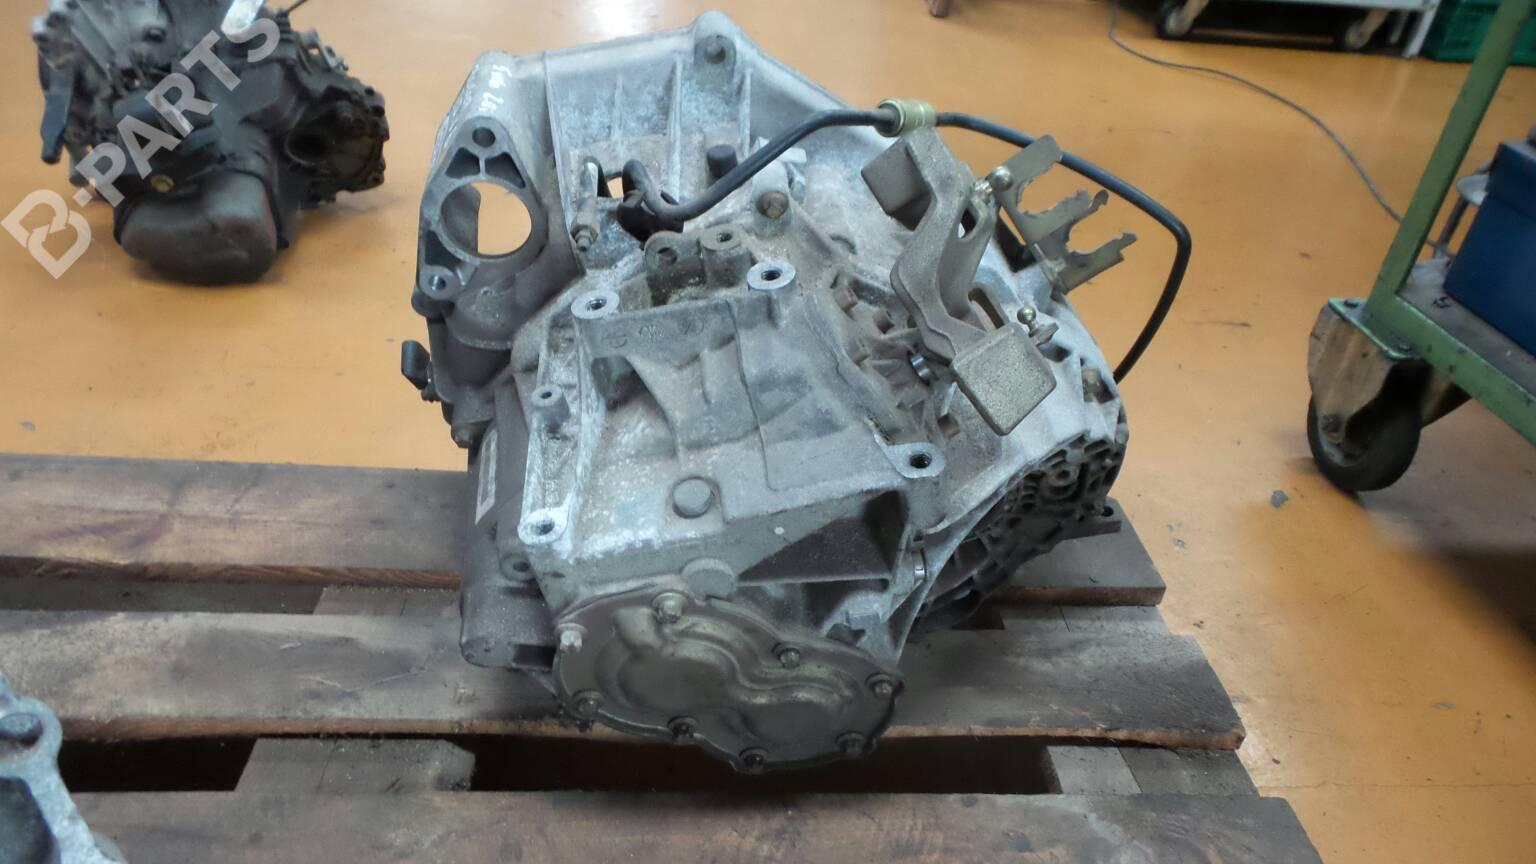 ... Manual Gearbox 20S44 ROVER, 75 (RJ) 2.0 V6 (150hp) 20 K4F ...